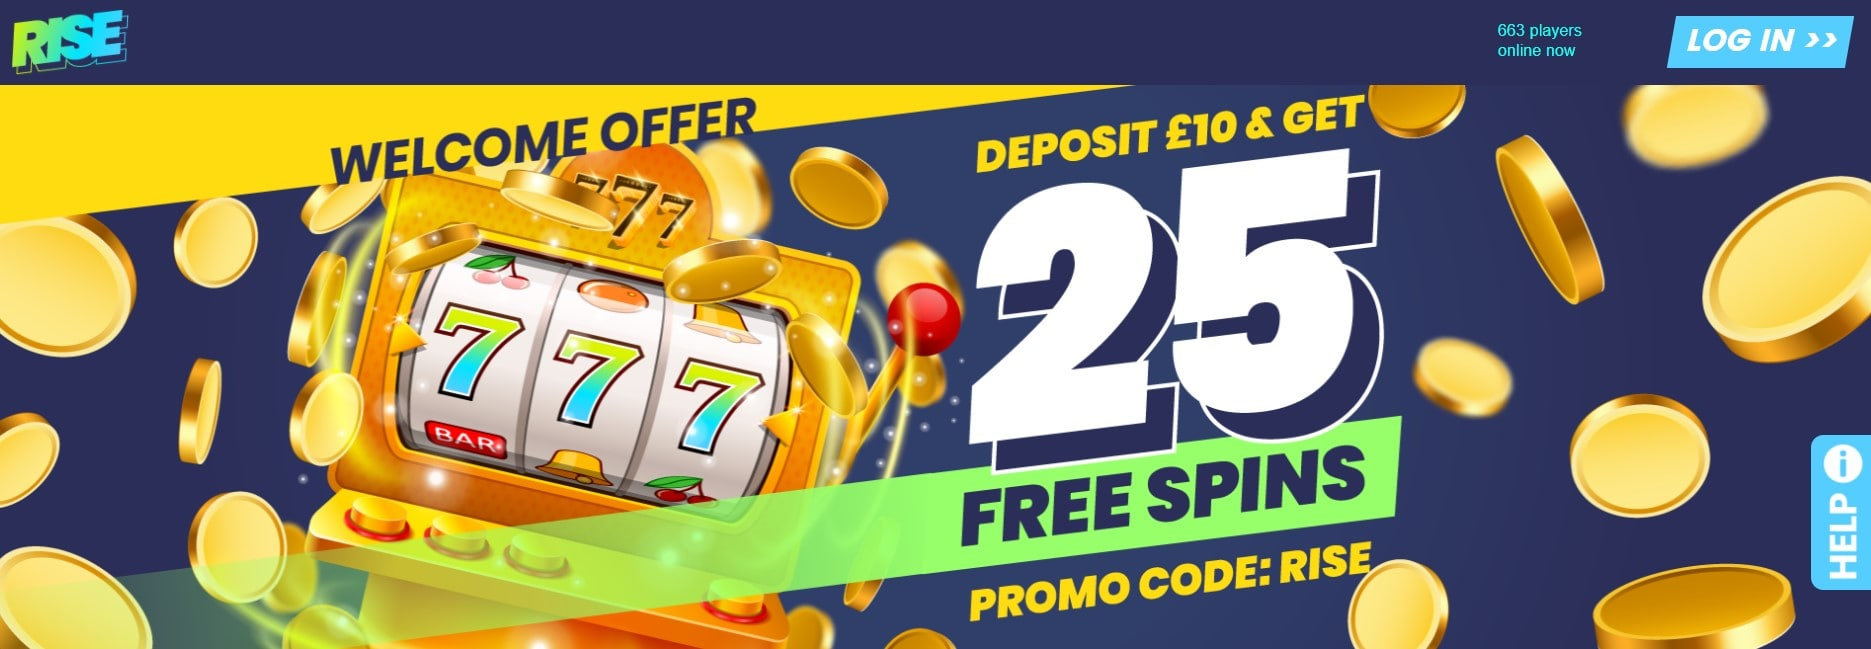 rise casino bonuses and promotions